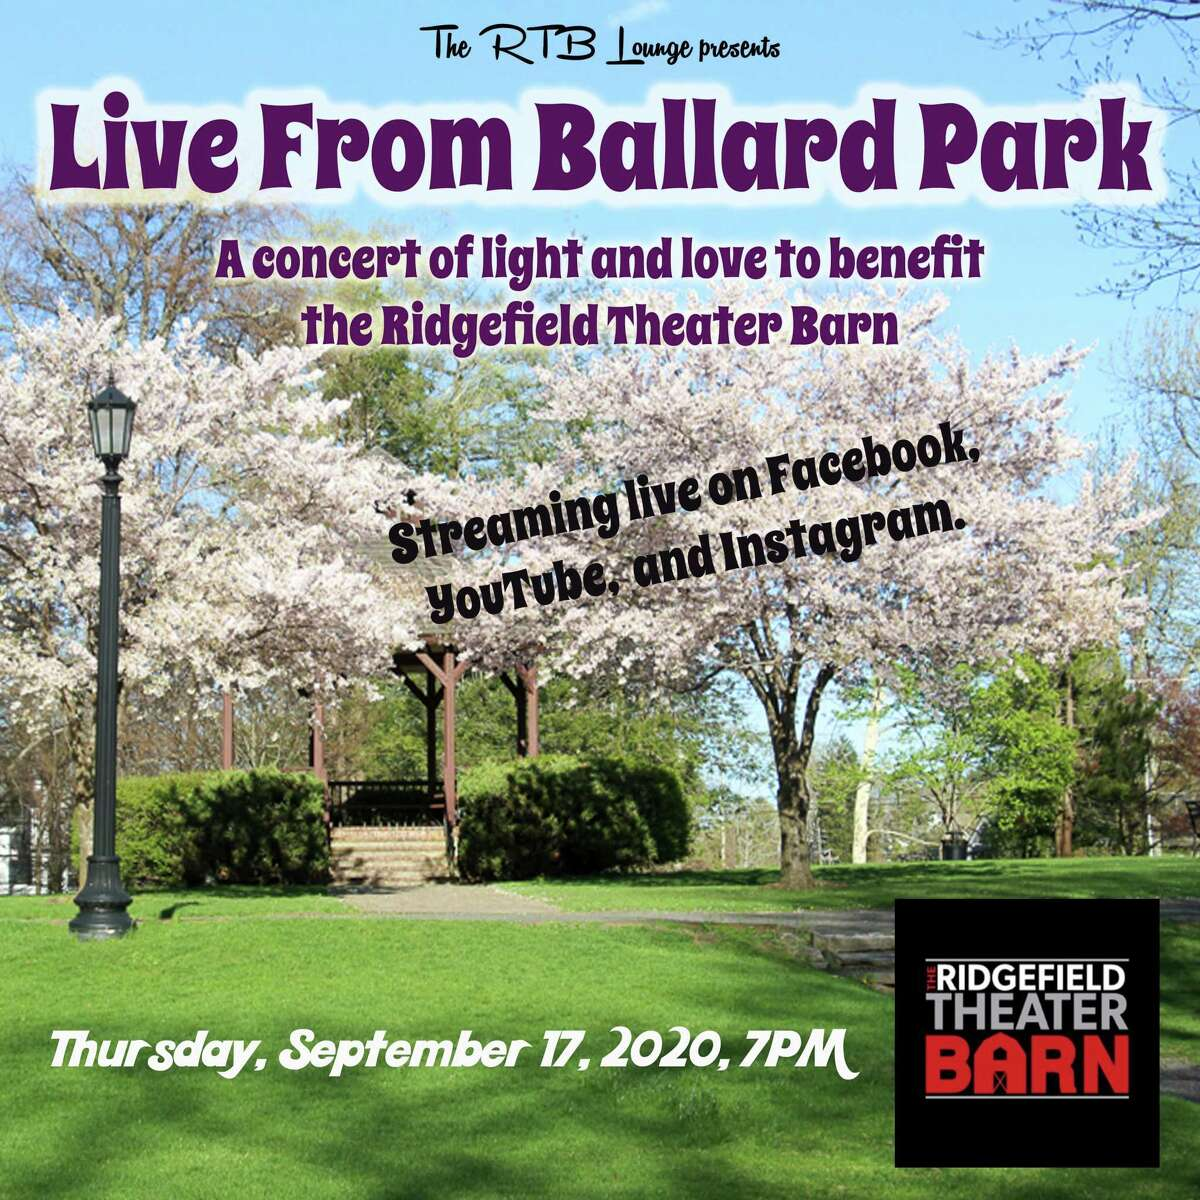 """The Ridgefield Theater Barn is staging """"Live from Ballard Park: A concert of light and love to benefit the Ridgefield Theater Barn"""" Thursday, Sept. 17, at 7 p.m."""